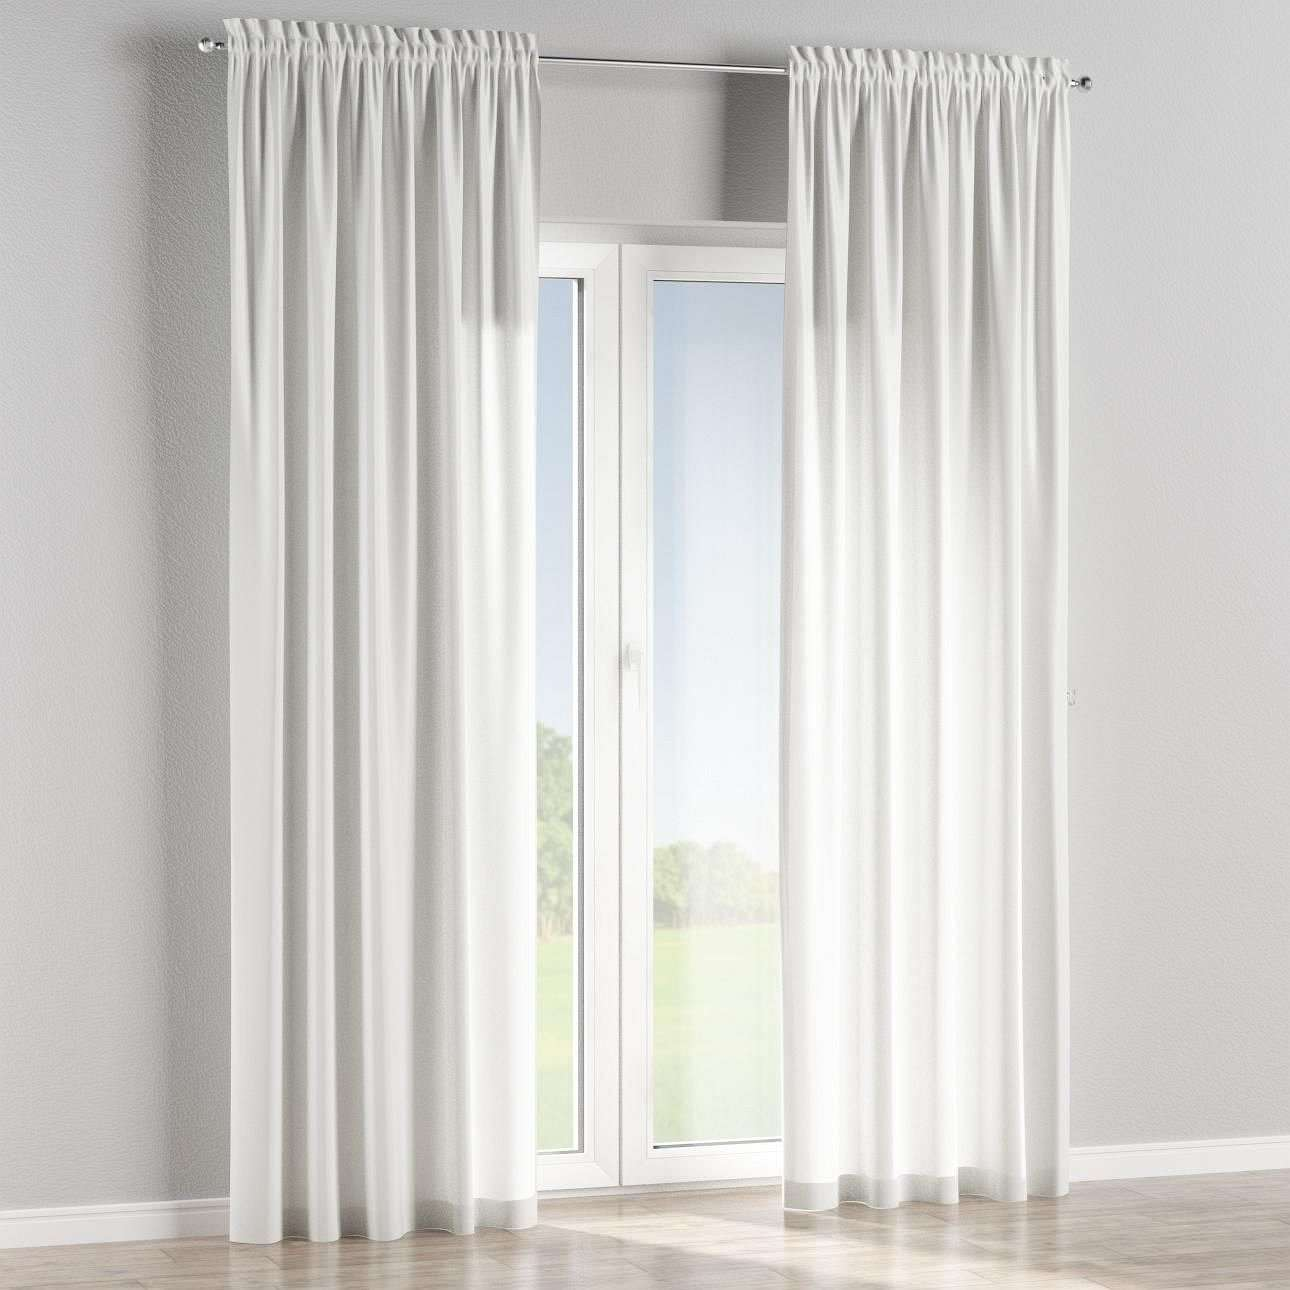 Slot and frill lined curtains in collection Ashley, fabric: 137-43